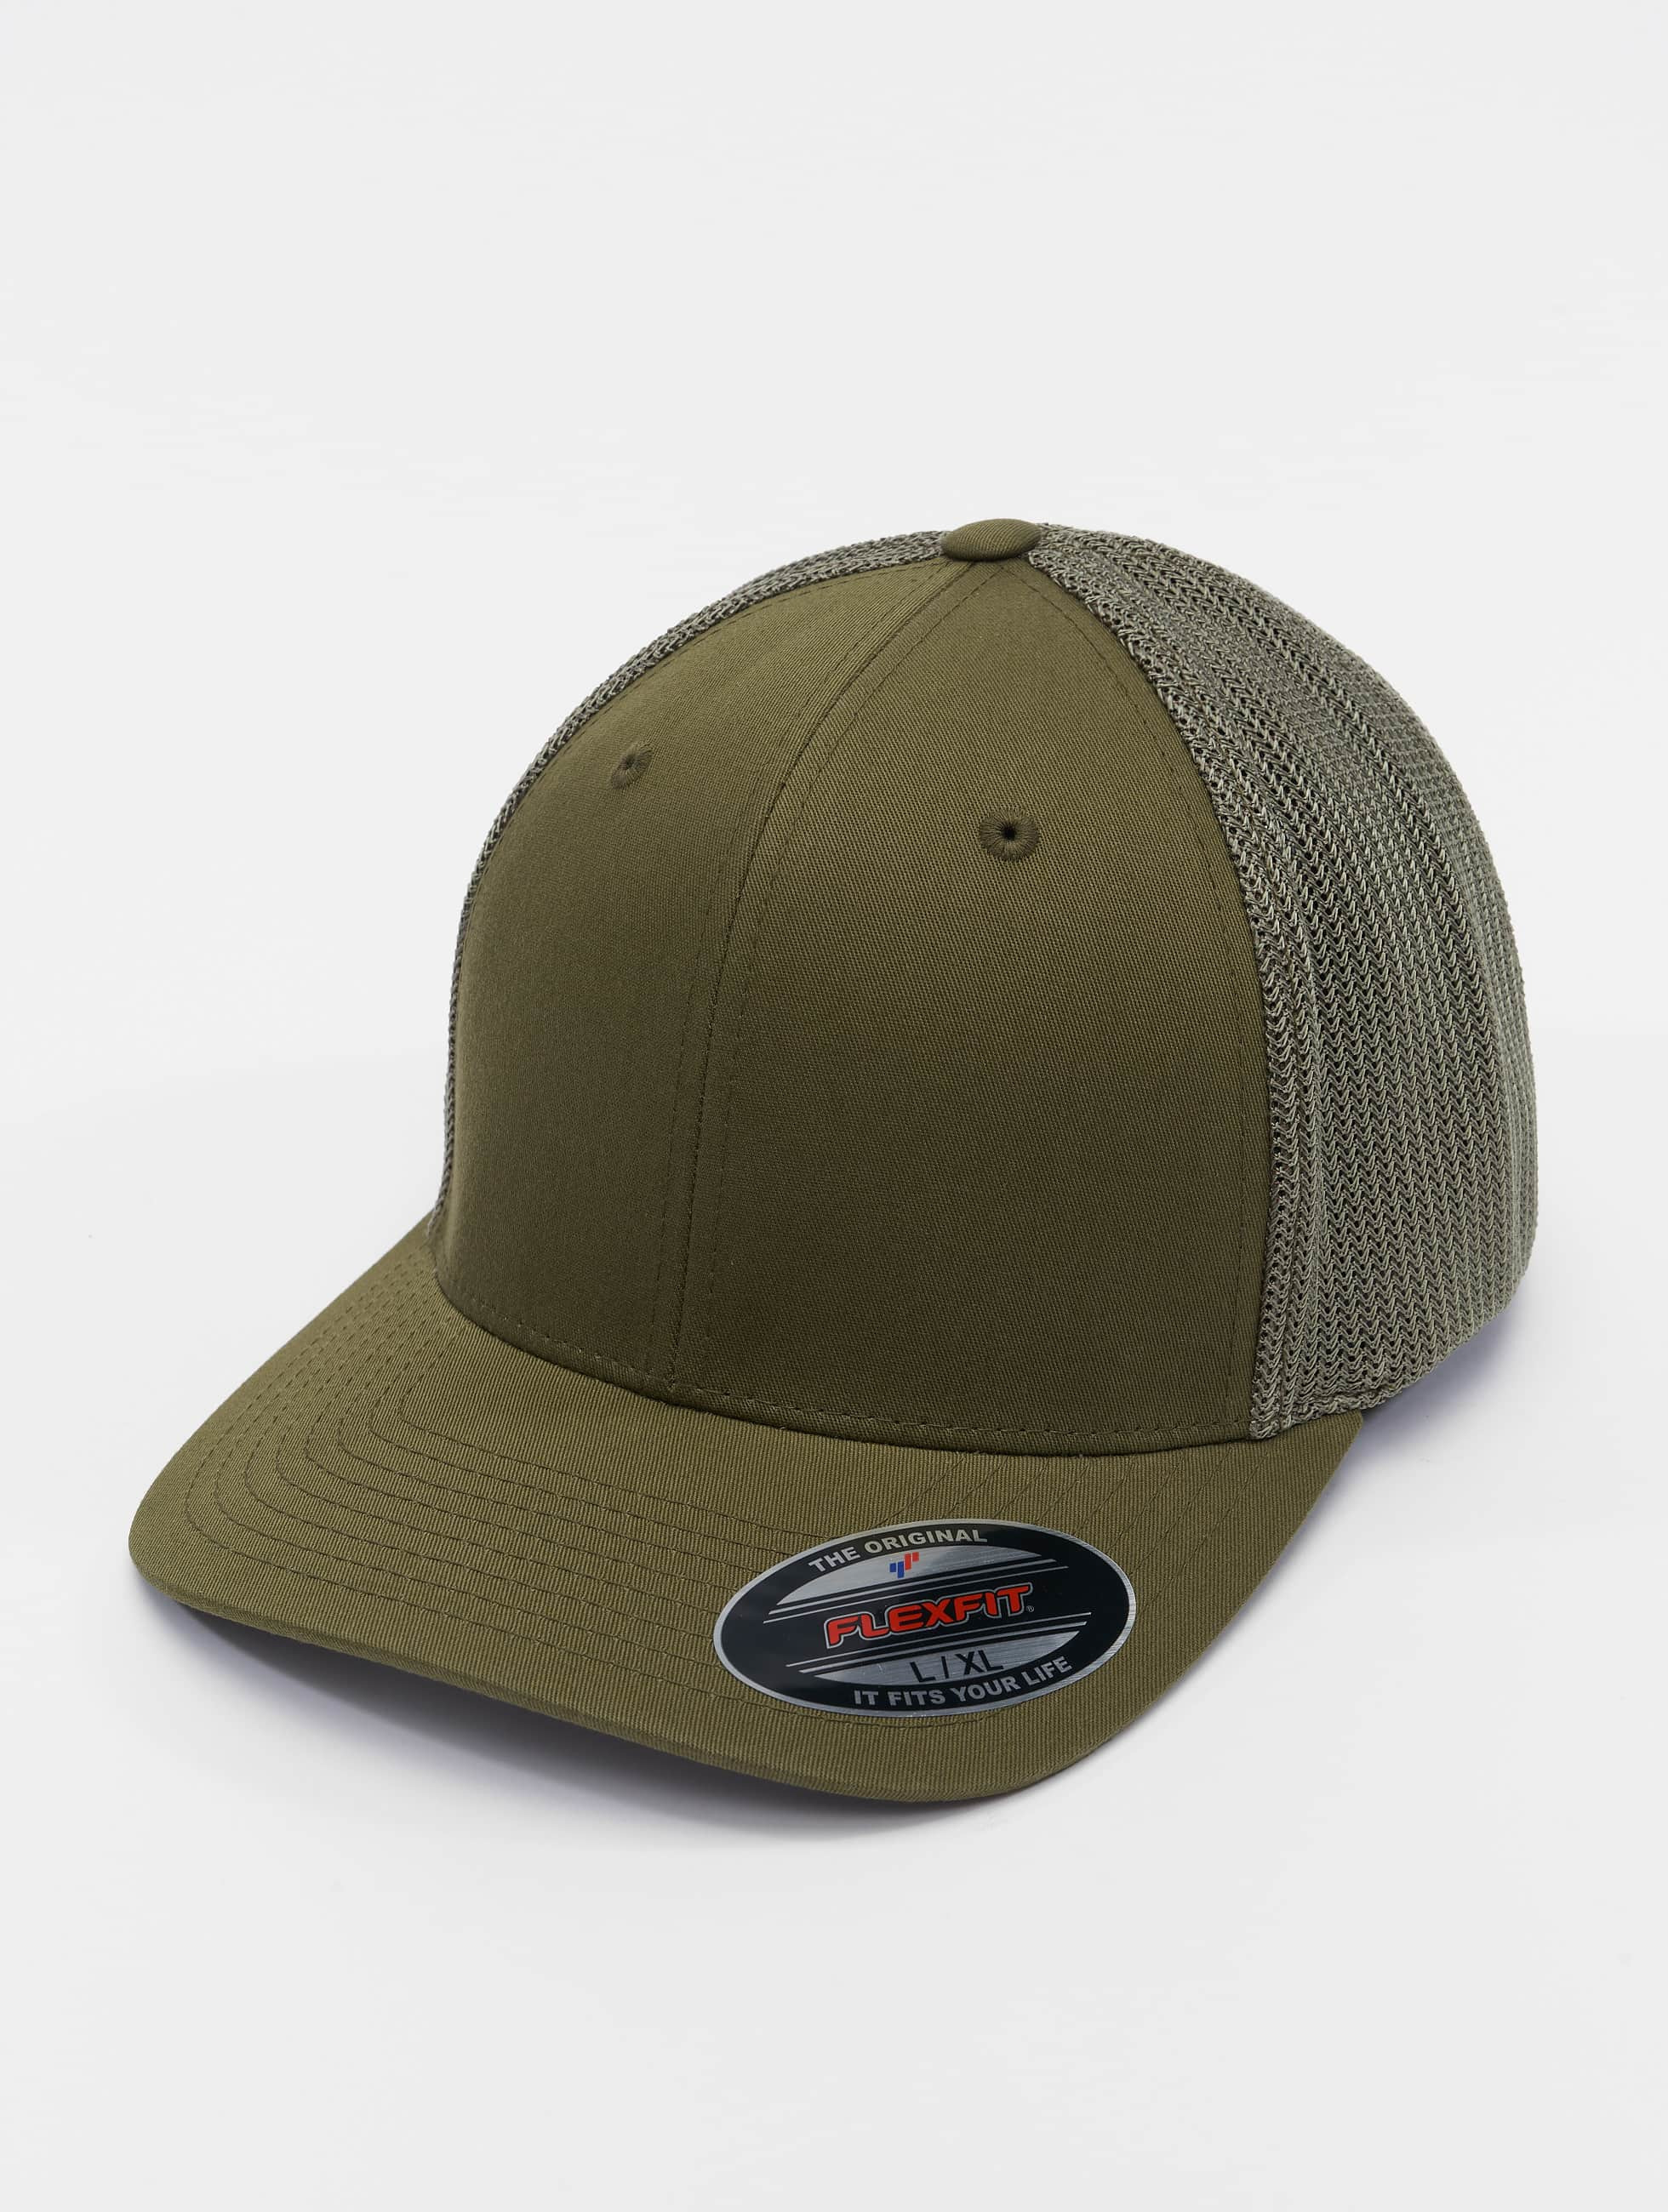 Flexfit Flexfitted Cap Mesh Cotton Twill oliva